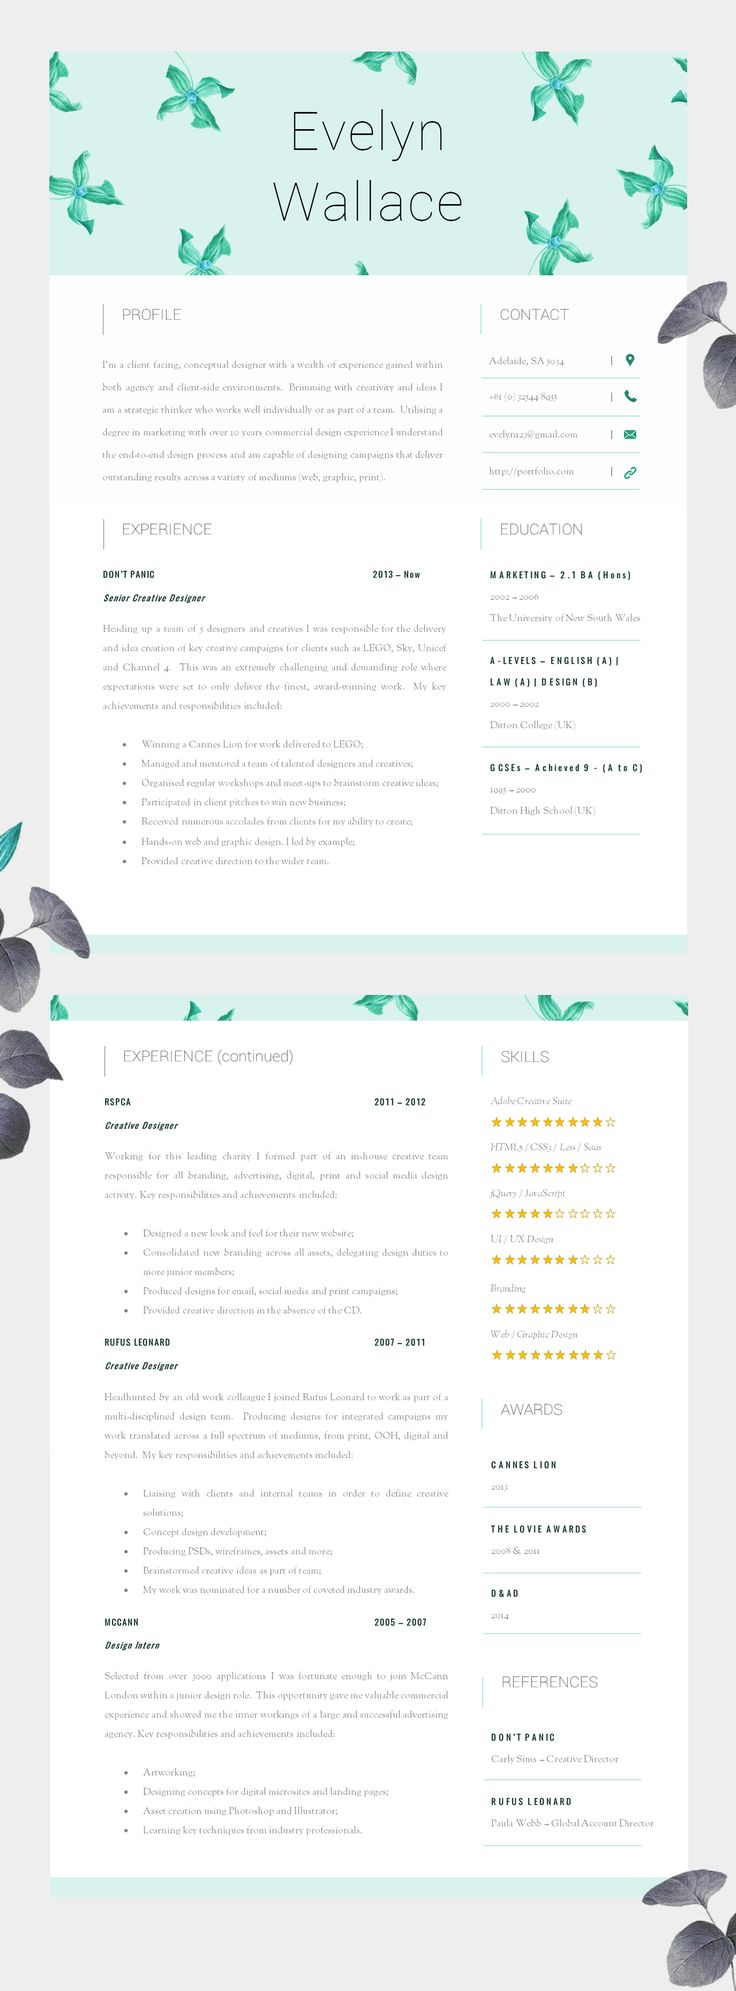 high impact resume template two page cv cover letter advice printable for word the fielding creative cv beautifully designed